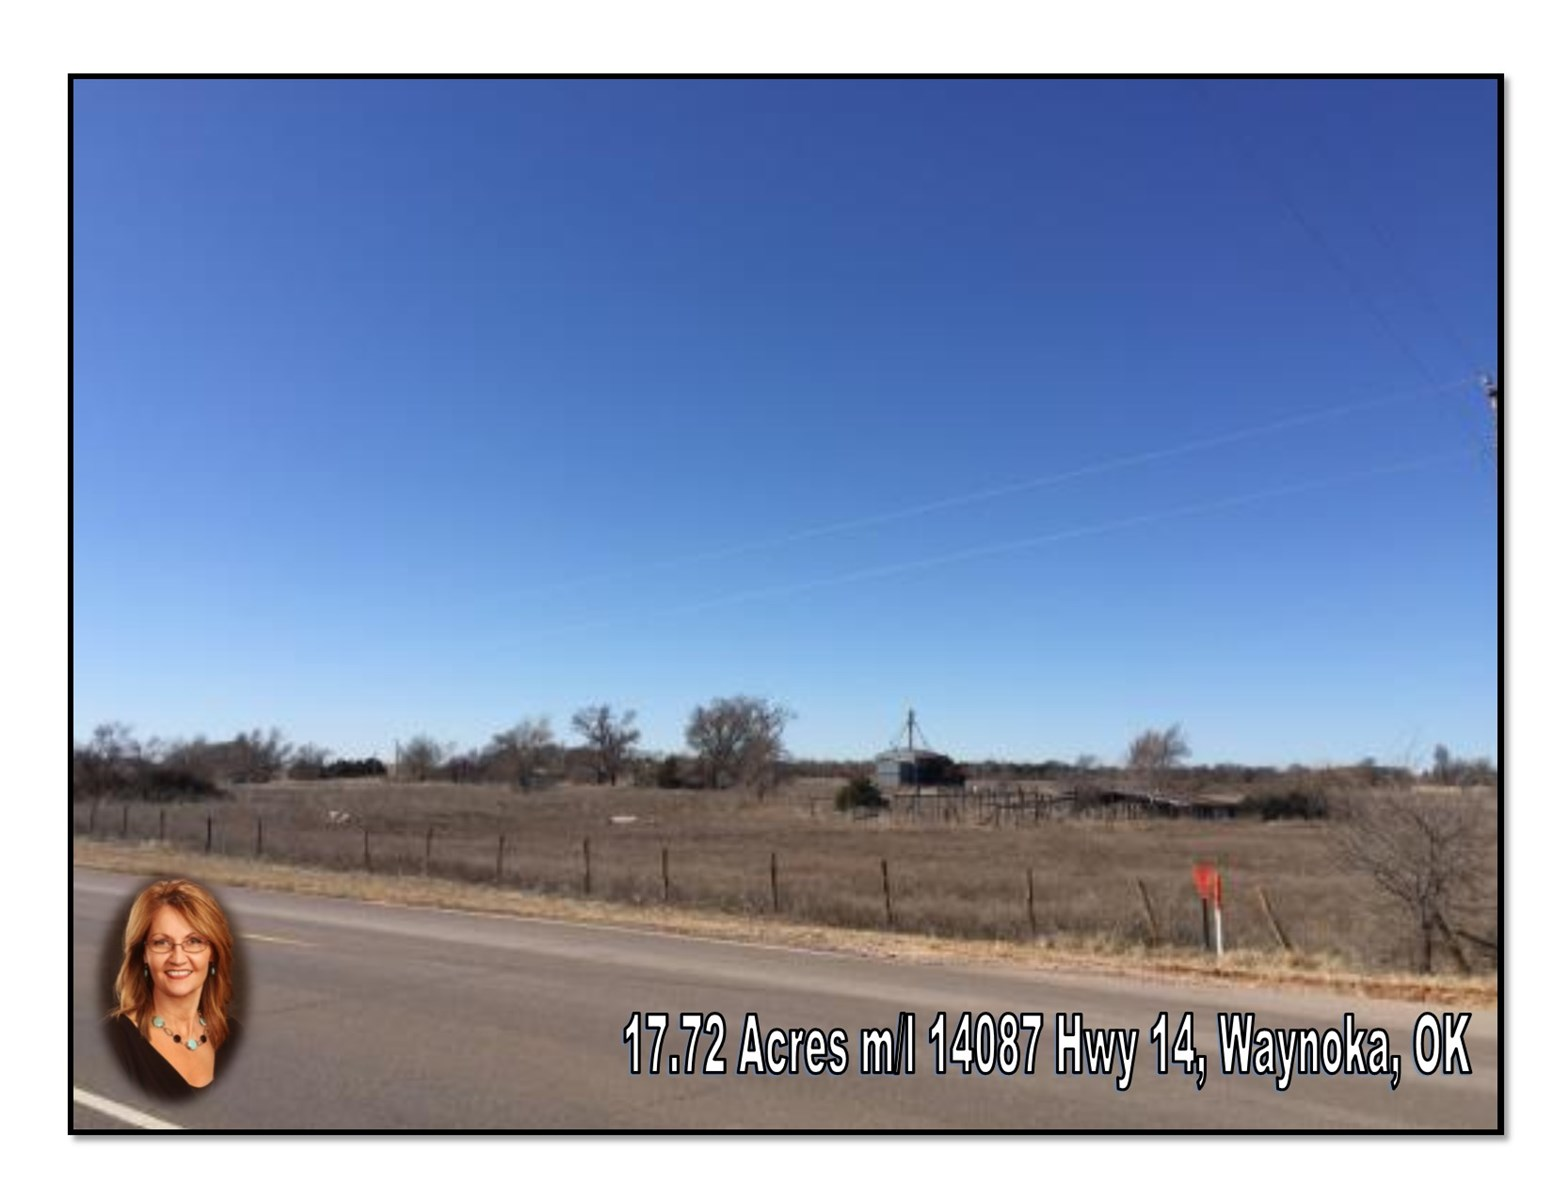 Land for Sale Waynoka, OK 17.72 Acres m/l